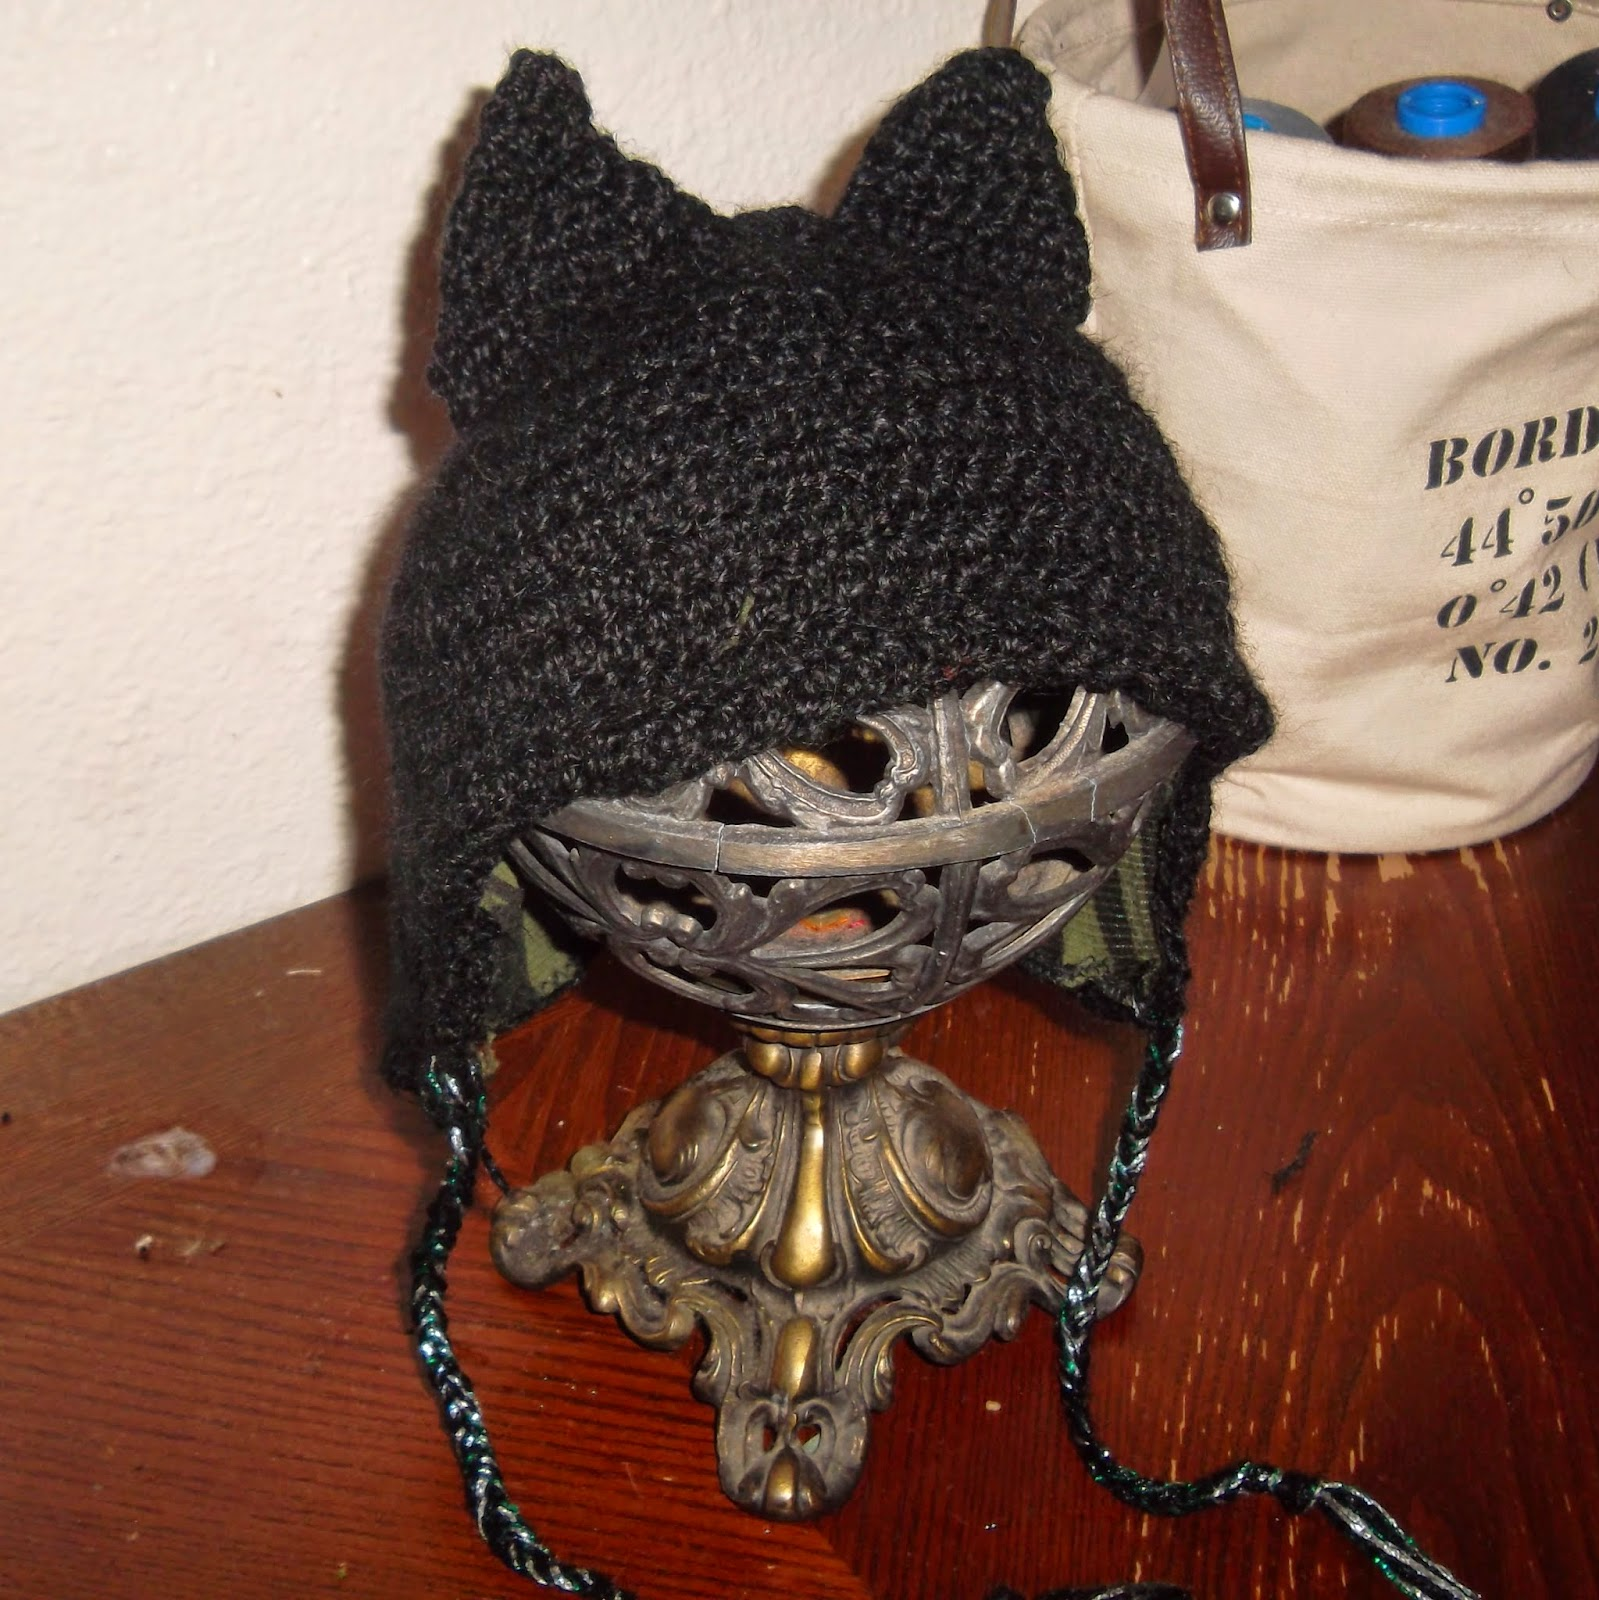 Beanie-style crocheted cap with cat ears, draped over openwork, globe-shaped metal stand.